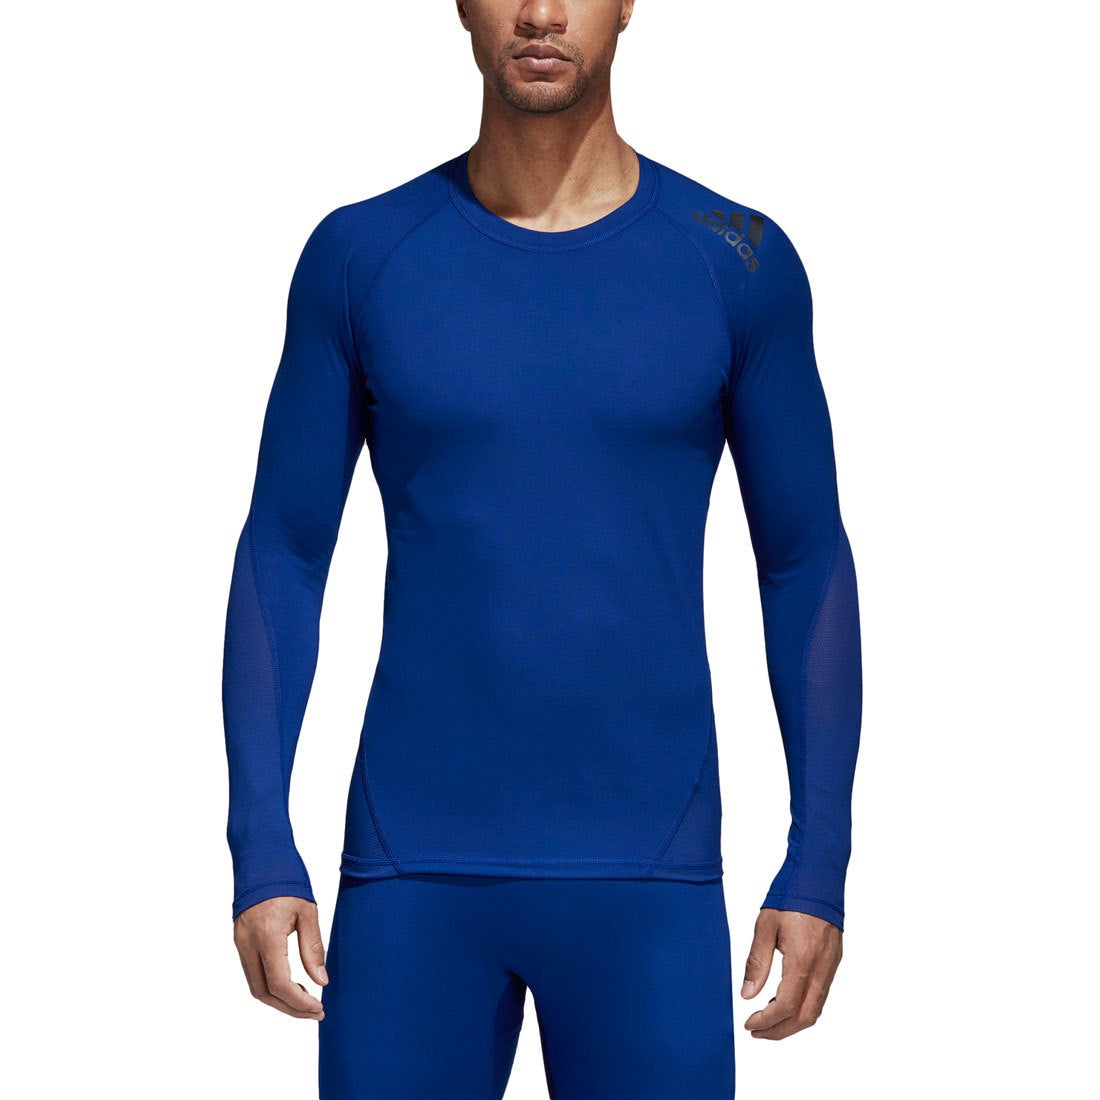 Fitness & Jogging Blue adidas AlphaSkin Sport Mens Long Sleeve Training Top Shirts